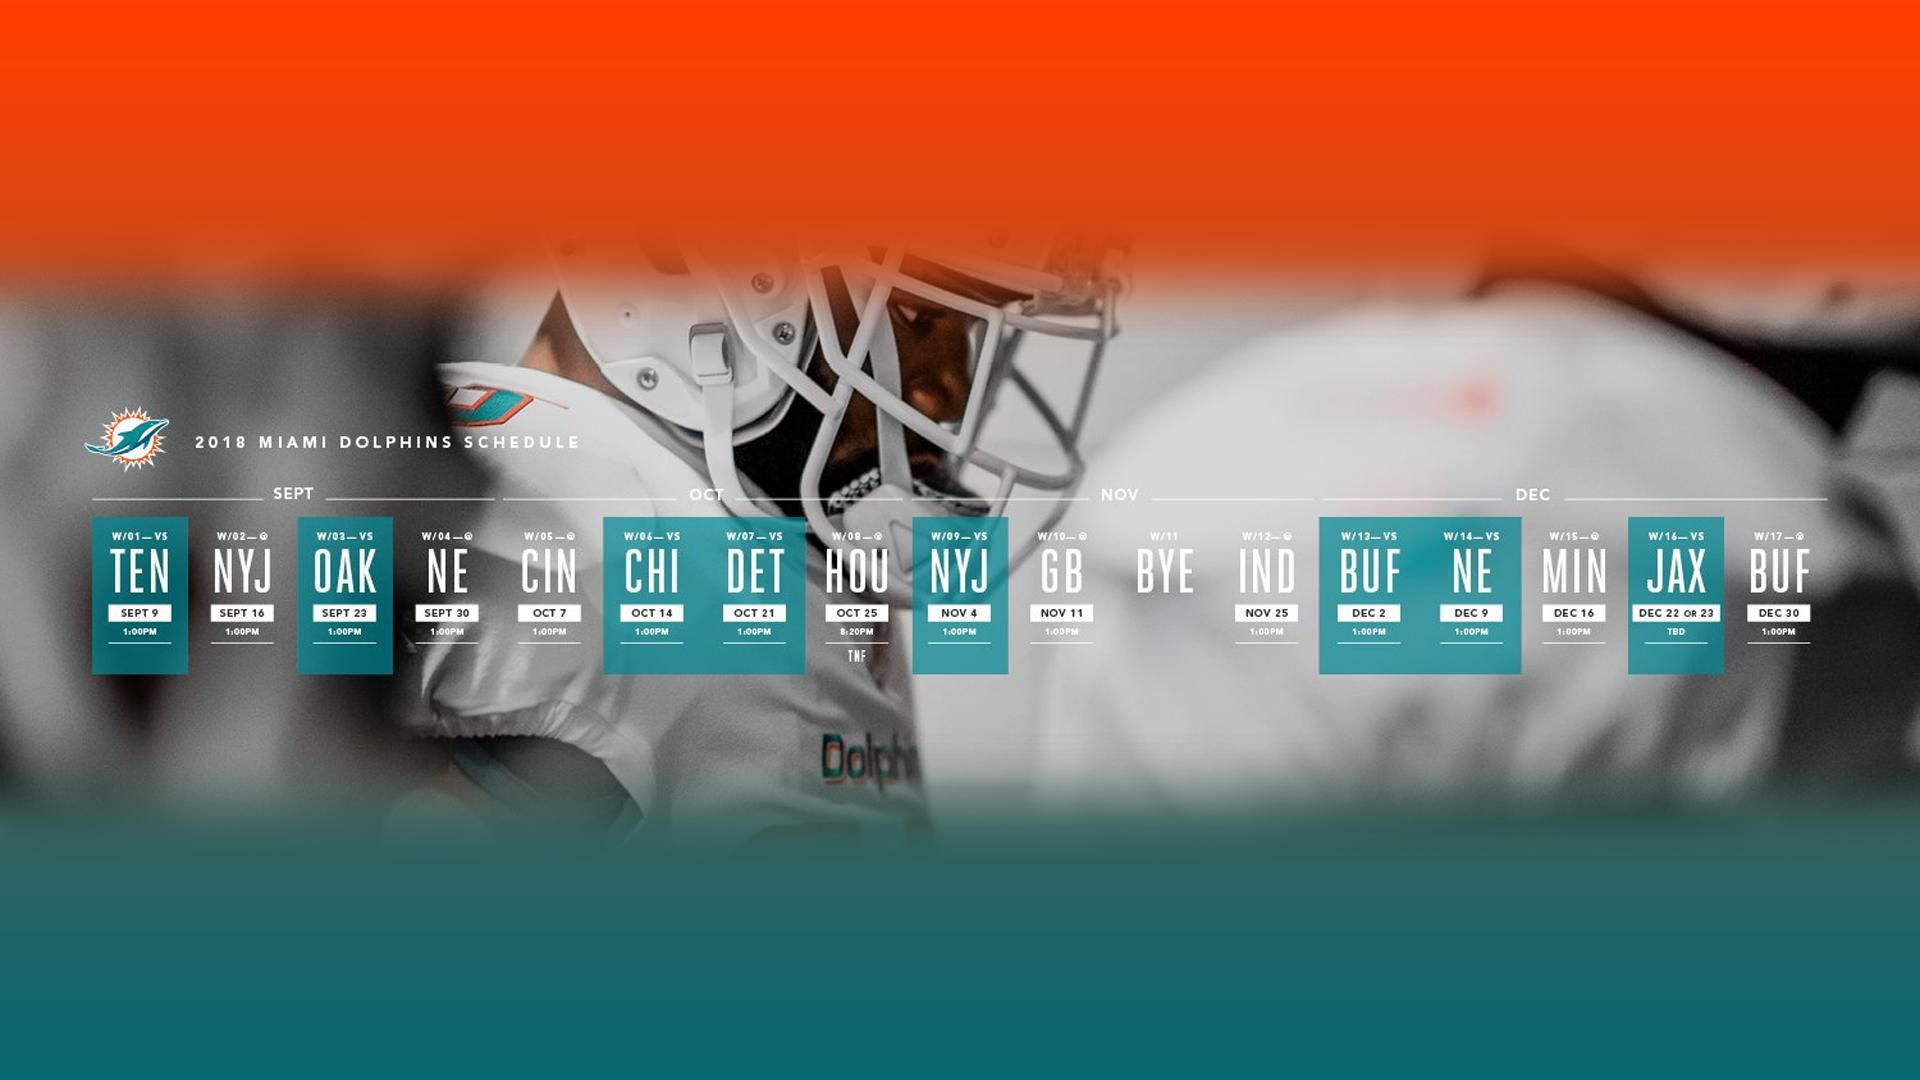 Miami Dolphins Schedule Wallpaper 1920x1080(from the